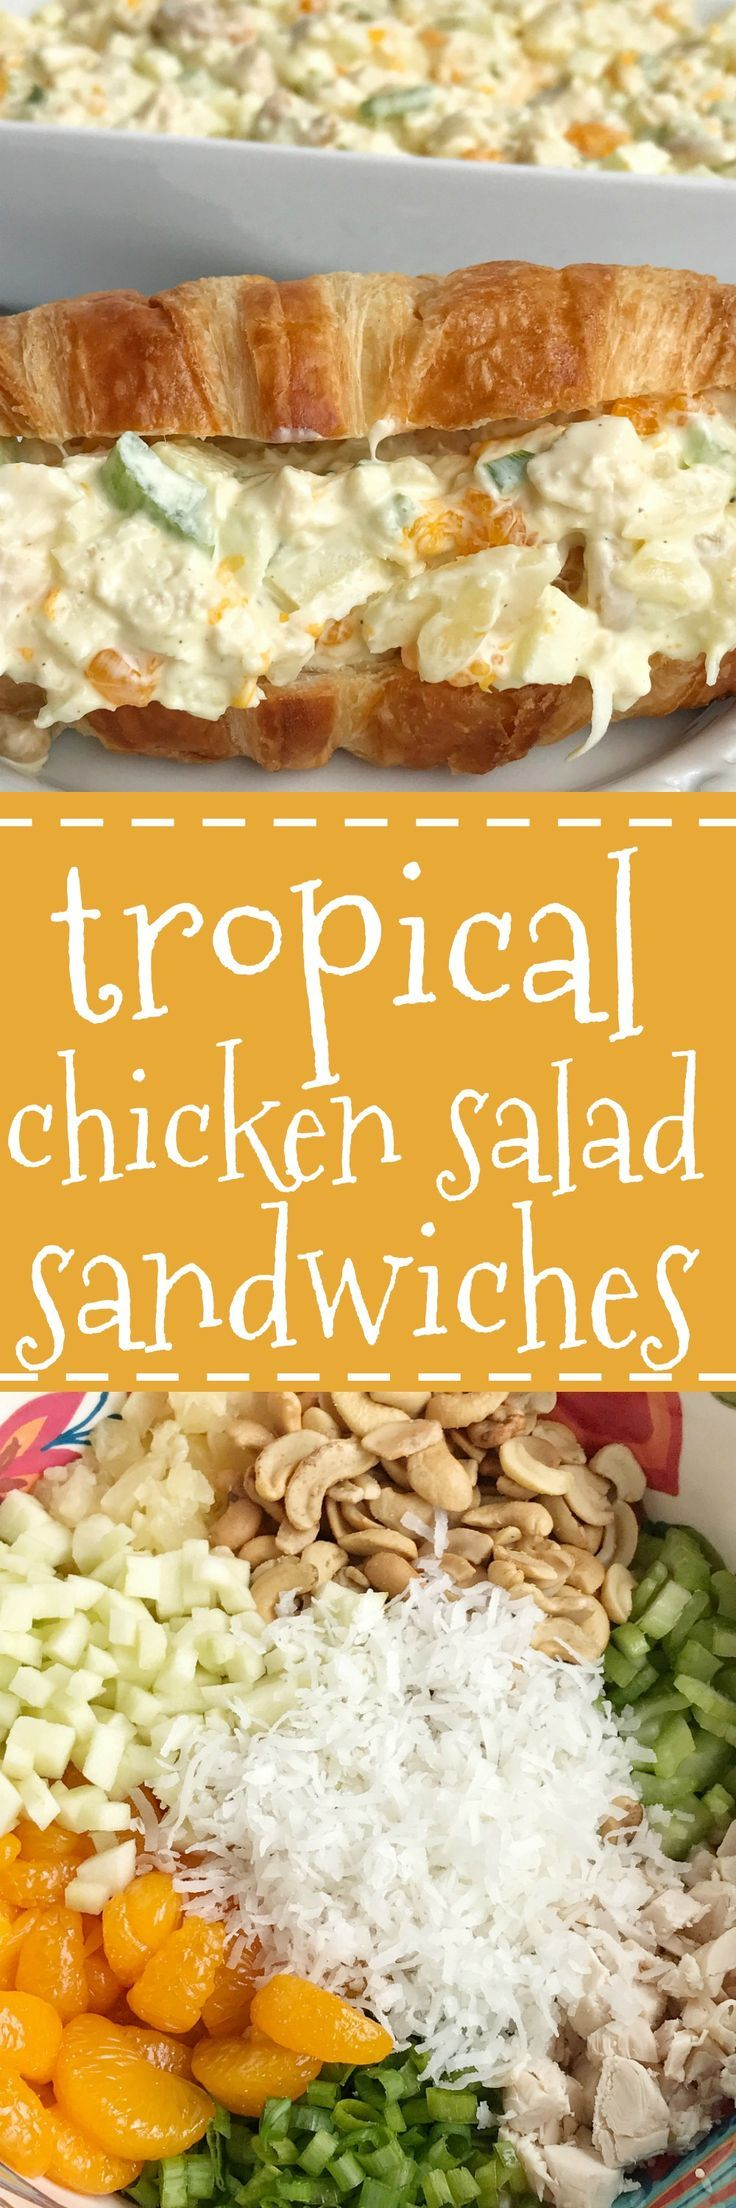 Tropical chicken salad sandwiches are a no oven dinner that are so creamy, delicious, and full of tropical flavors. Mandarin oranges, pineapple, green apple, coconut, green onions, and cashews. Covered in a creamy and simple dressing. These are perfect fo